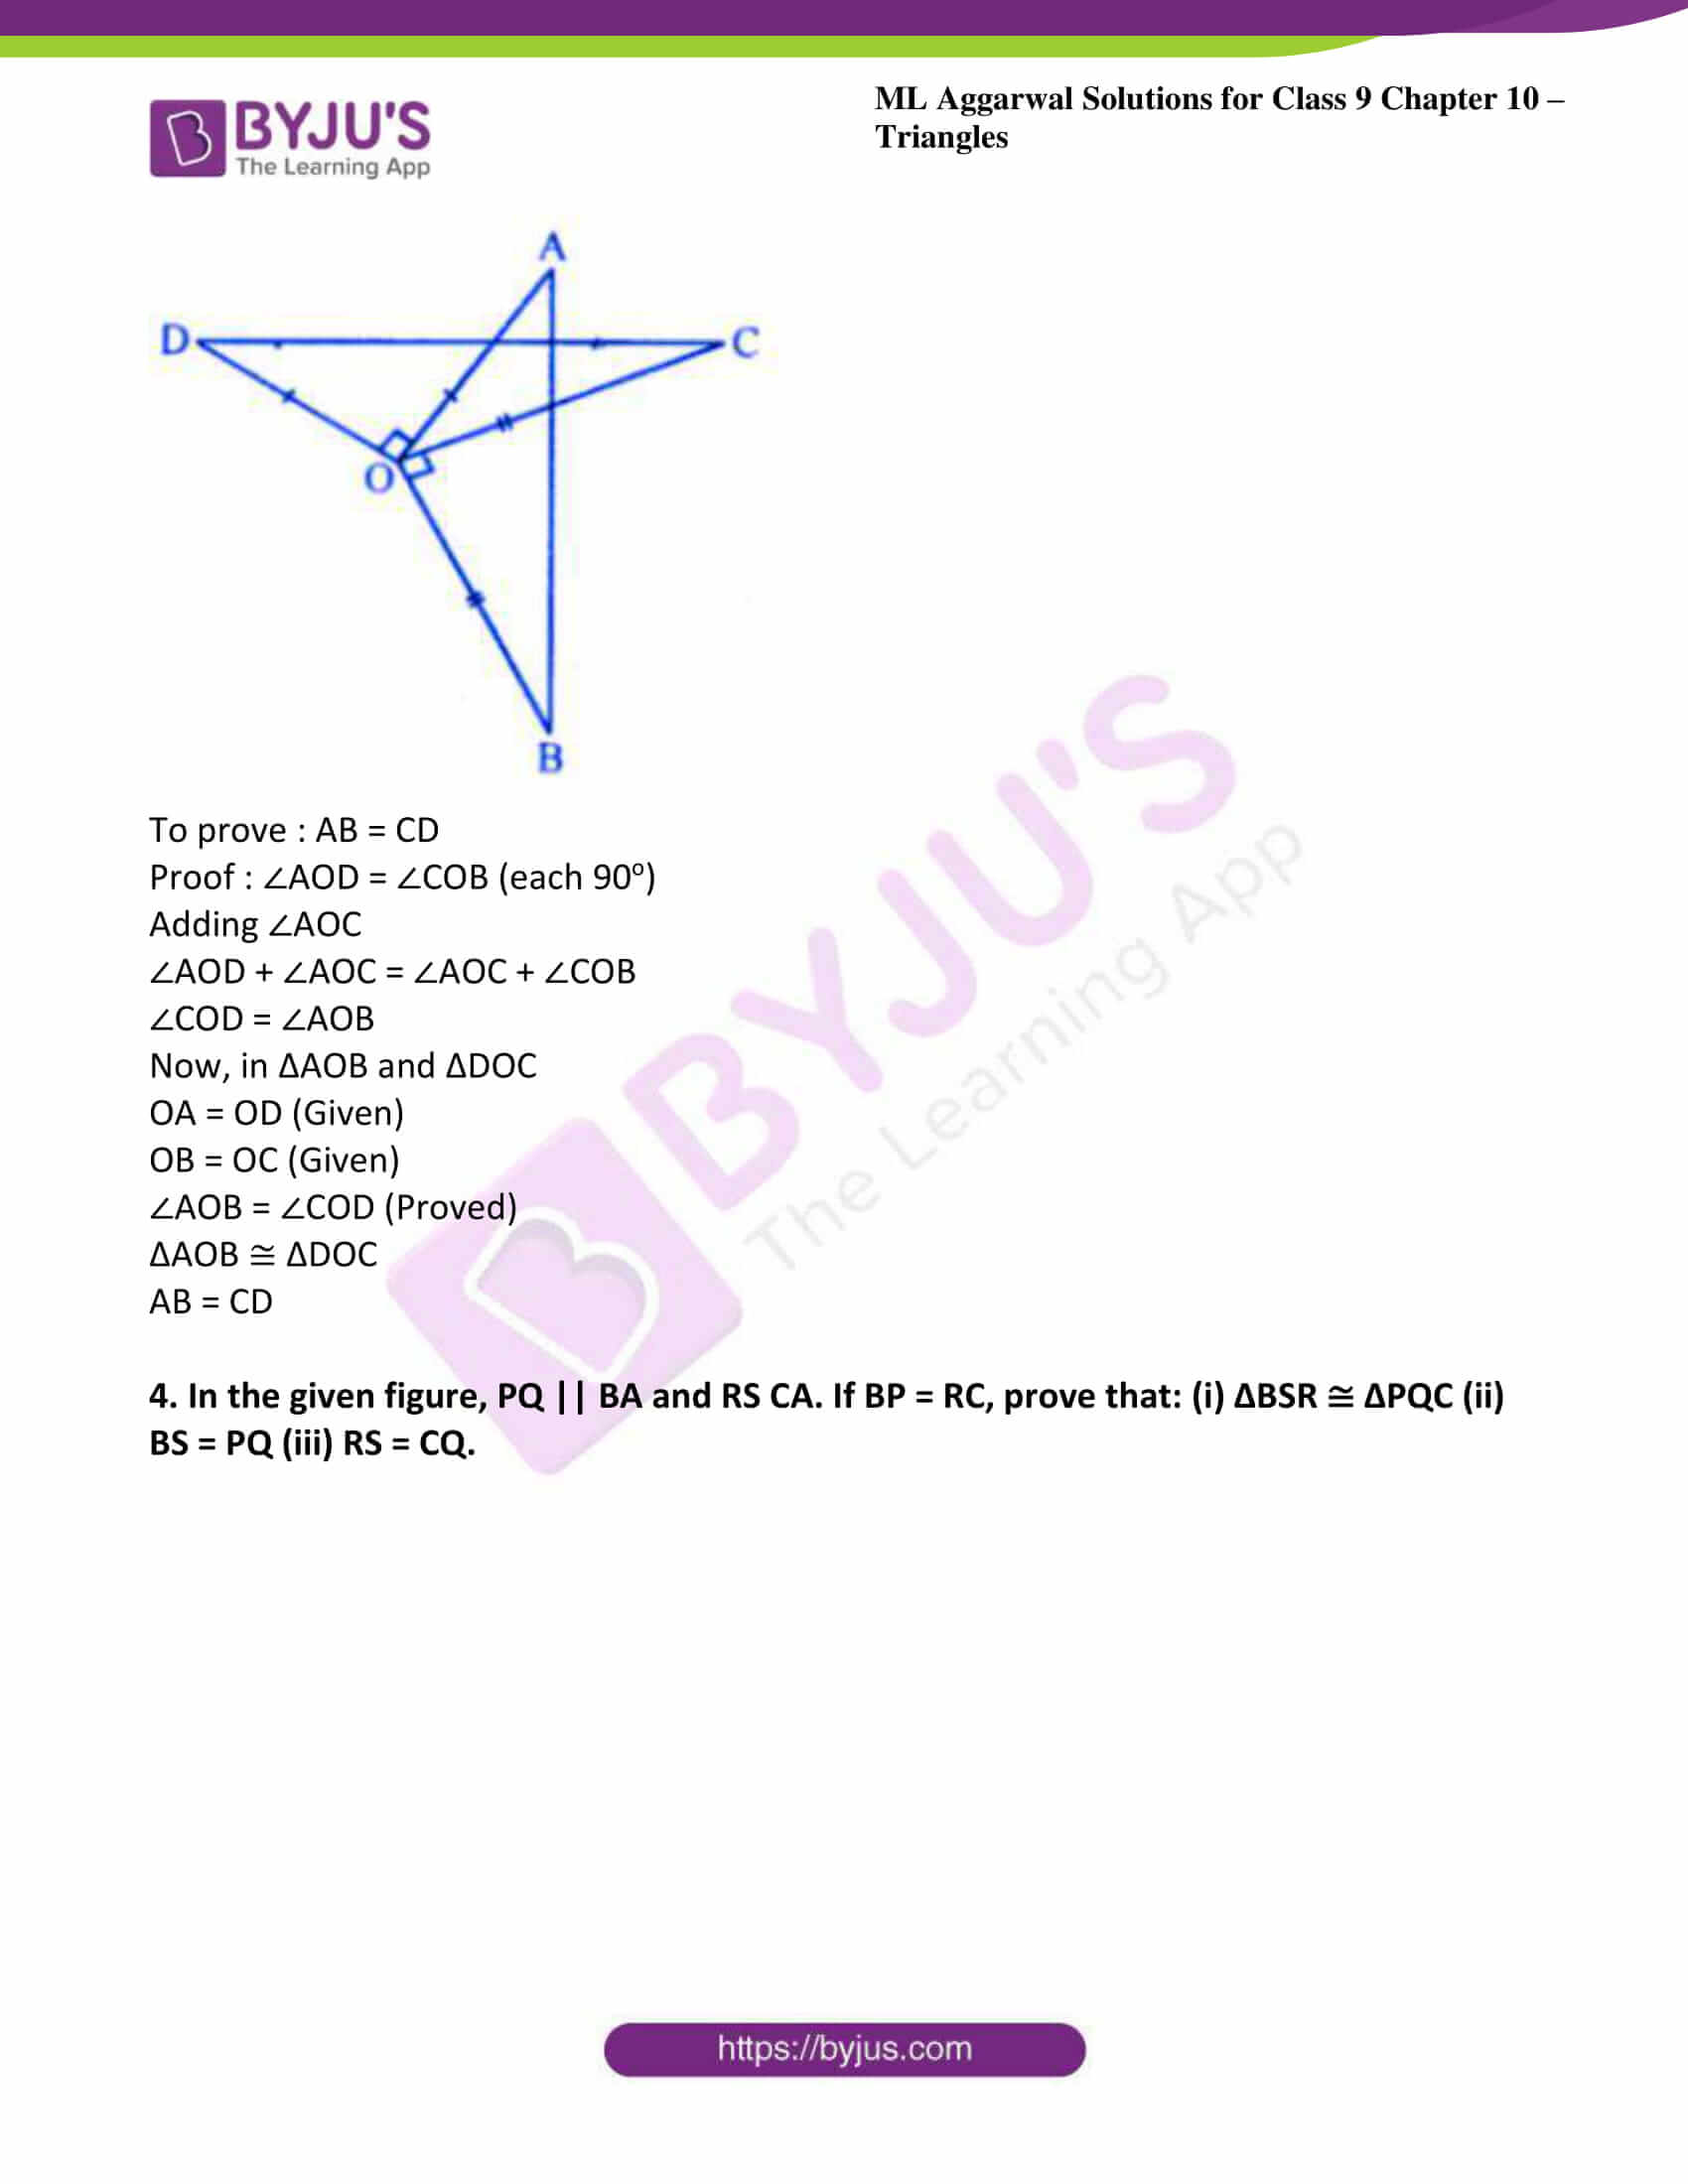 ml aggarwal solutions for class 9 maths chapter 10 30